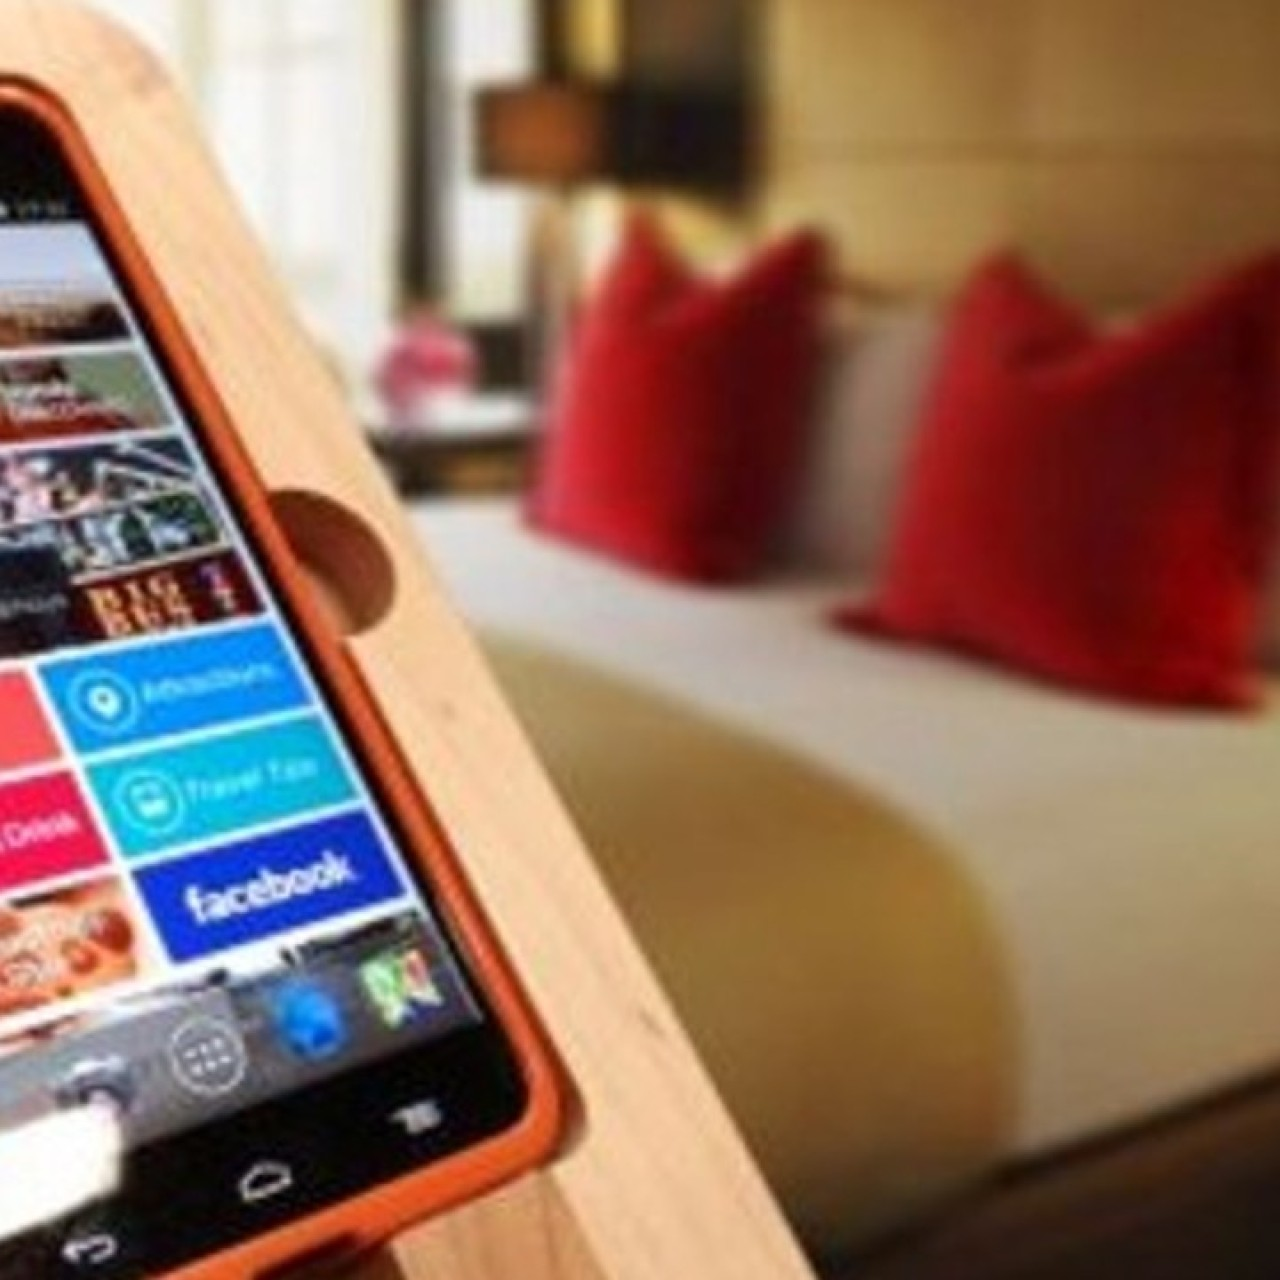 Tink Labs wants to bring its handy smartphones to hotel rooms in